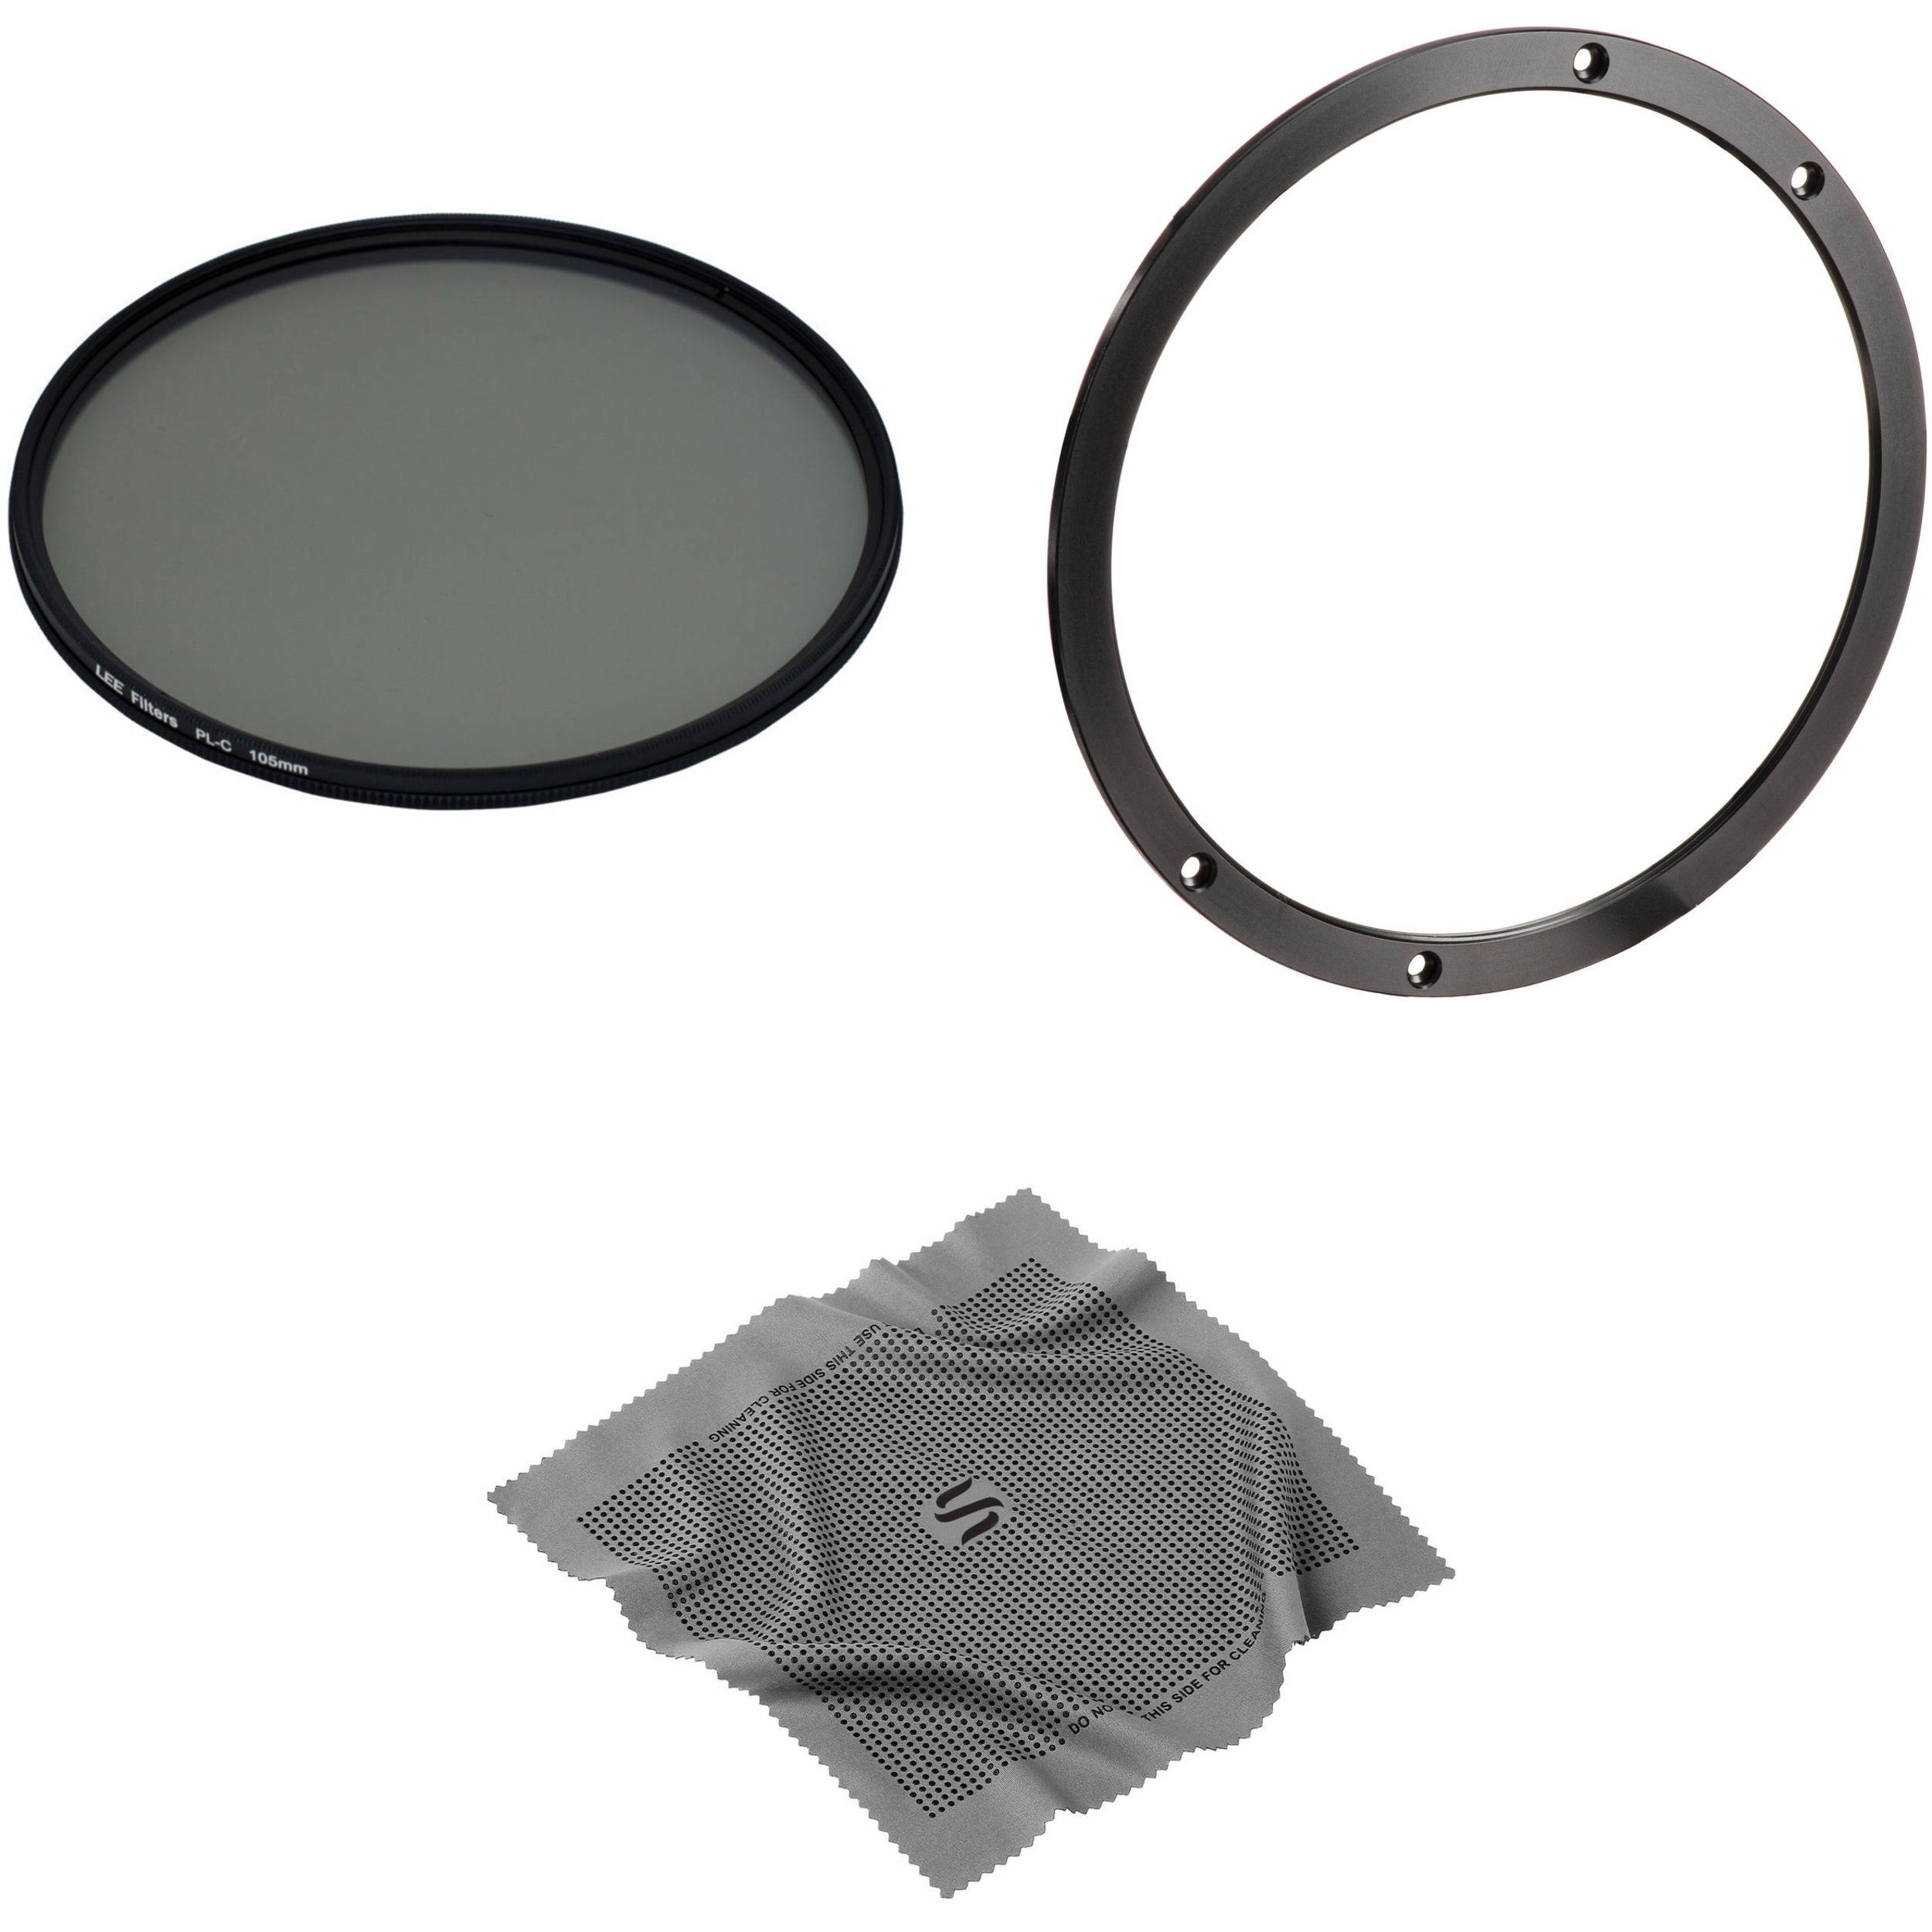 Lee Filters 105mm Landscape Circular Polarizer Filter Kit Bh Double Slotted Lens Hood With Accessory Ring For 100mm System And Microfiber